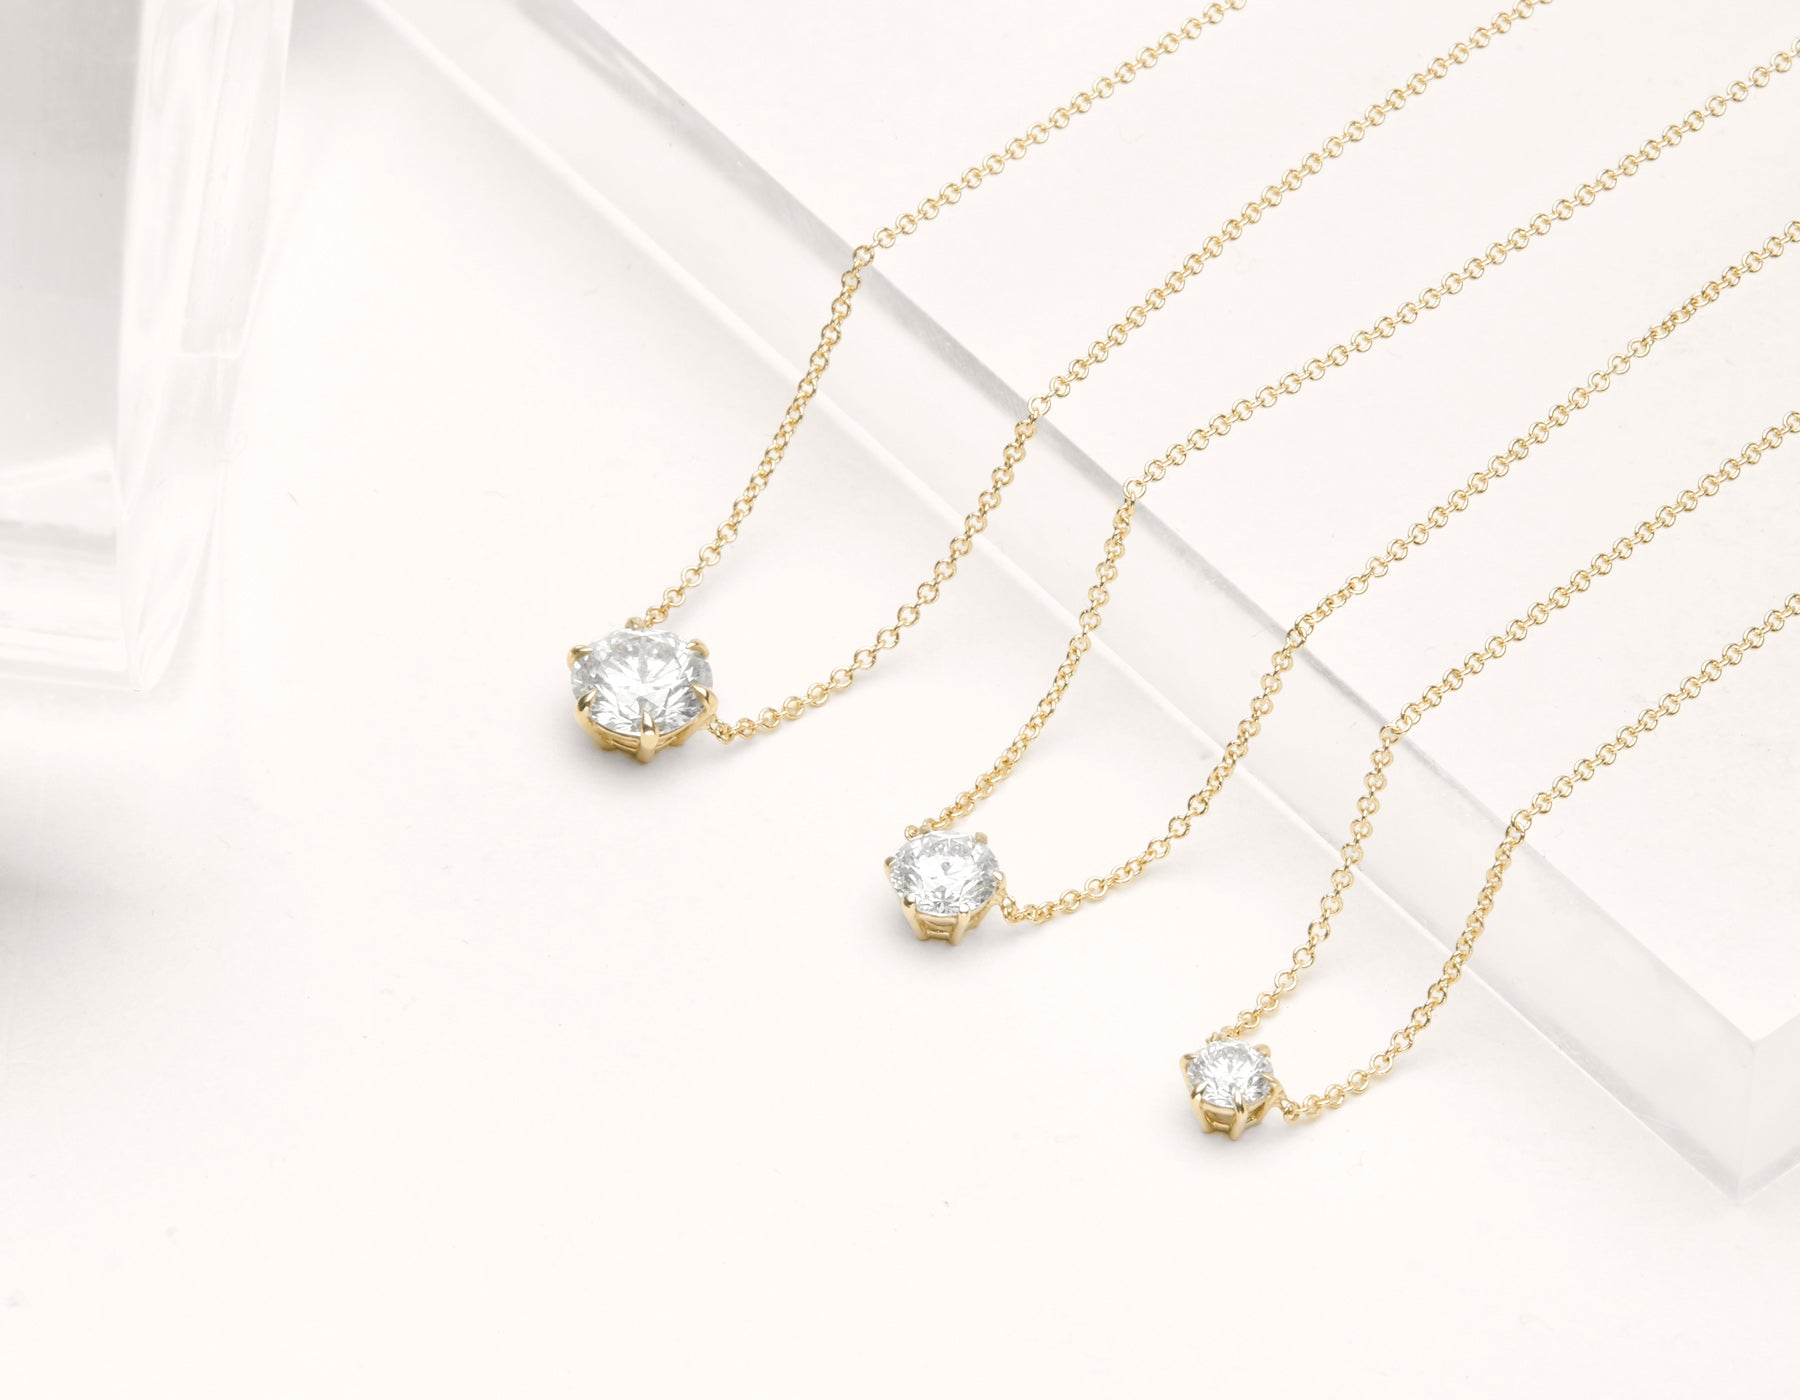 close up simple elegant Round Brilliant Diamond Necklace 6 prong set Vrai & Oro 18k solid yellow gold, 18K Yellow Gold